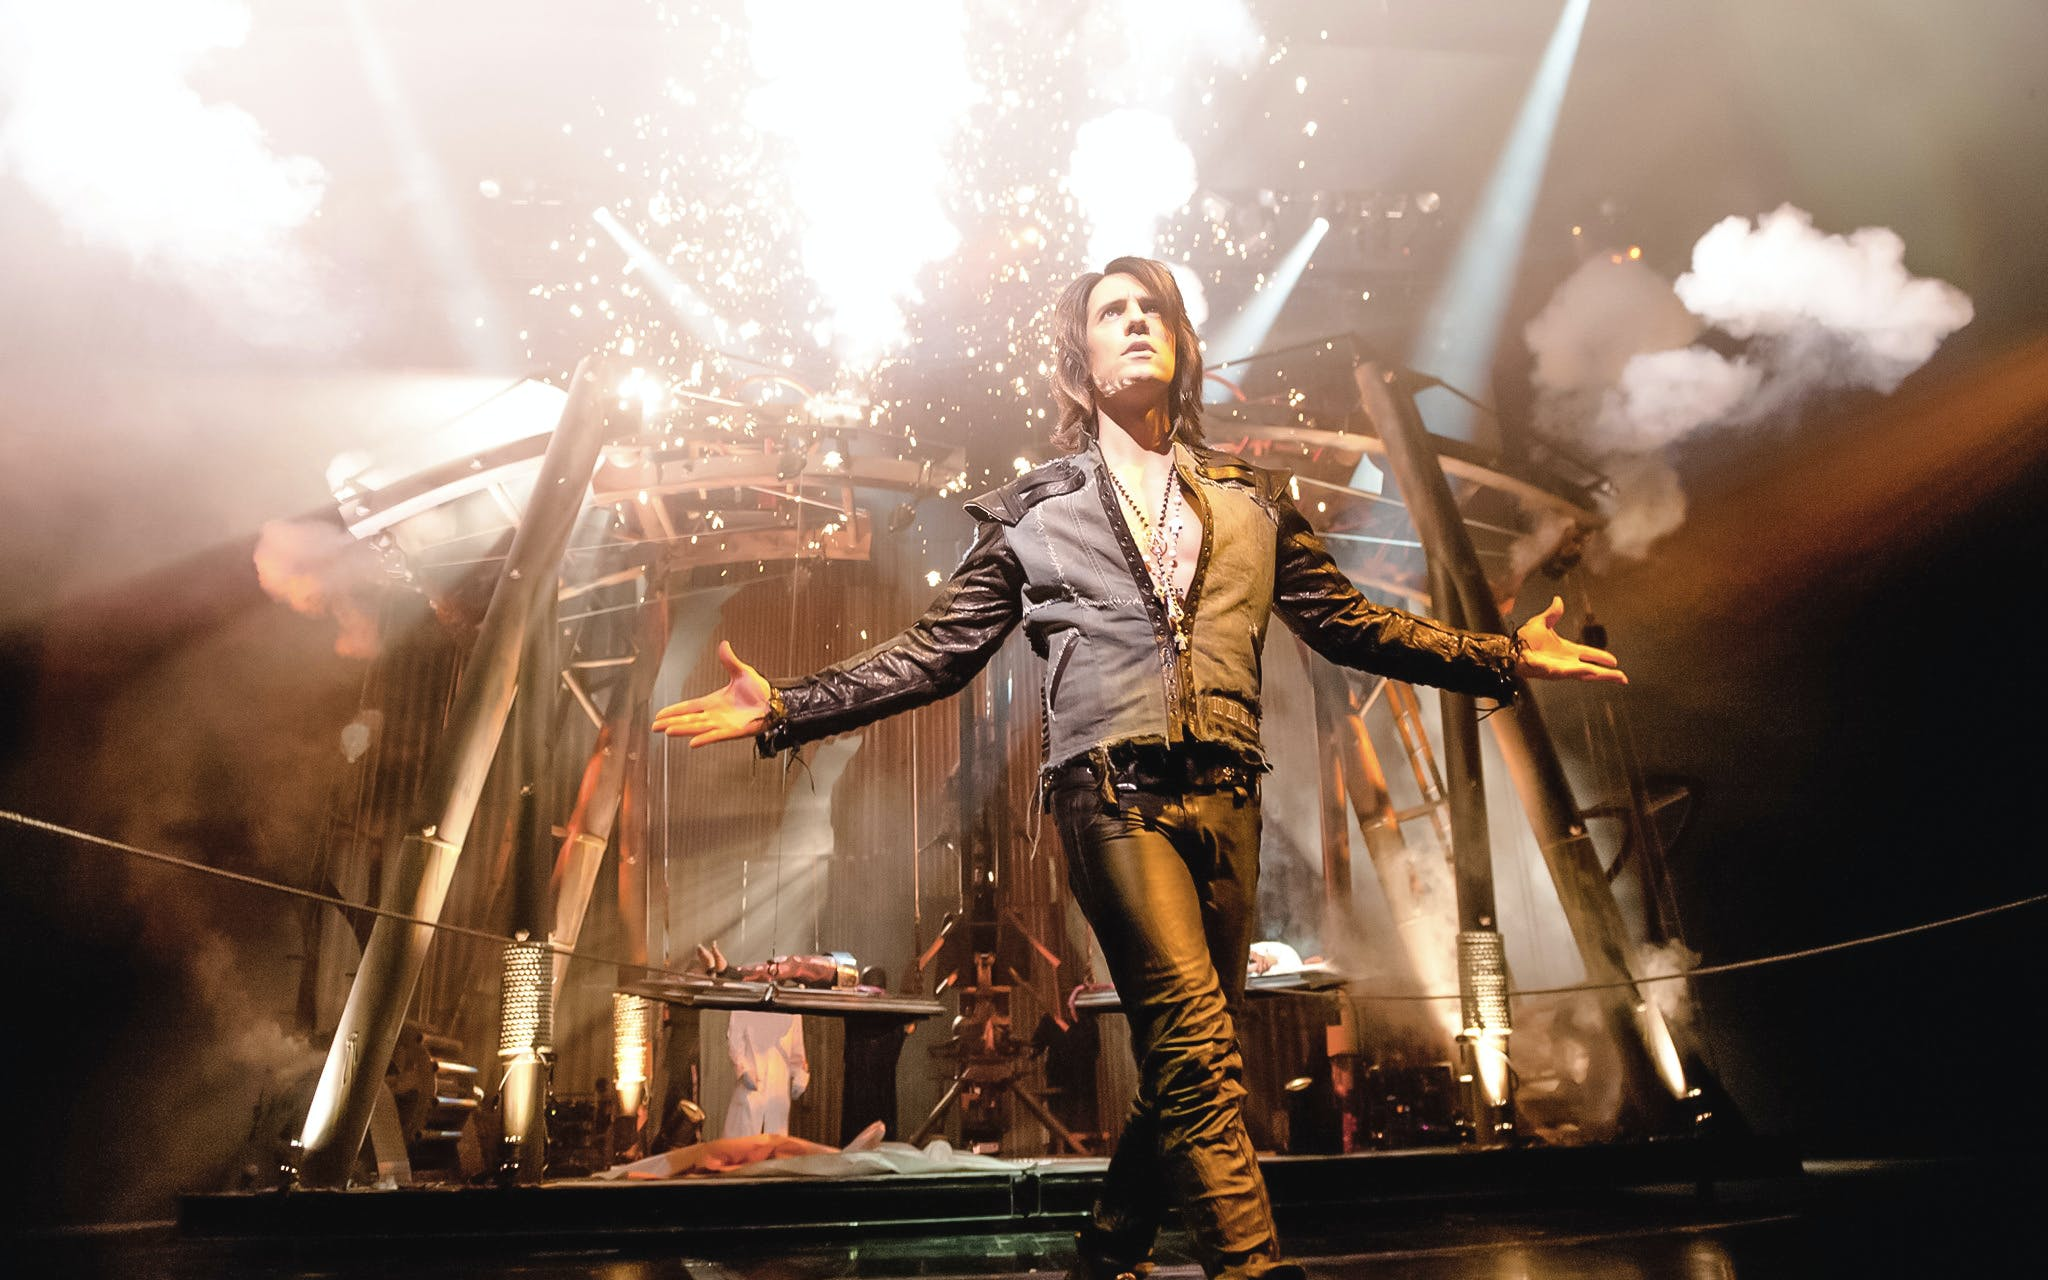 criss angel mindfreak live by cirque du soleil-2